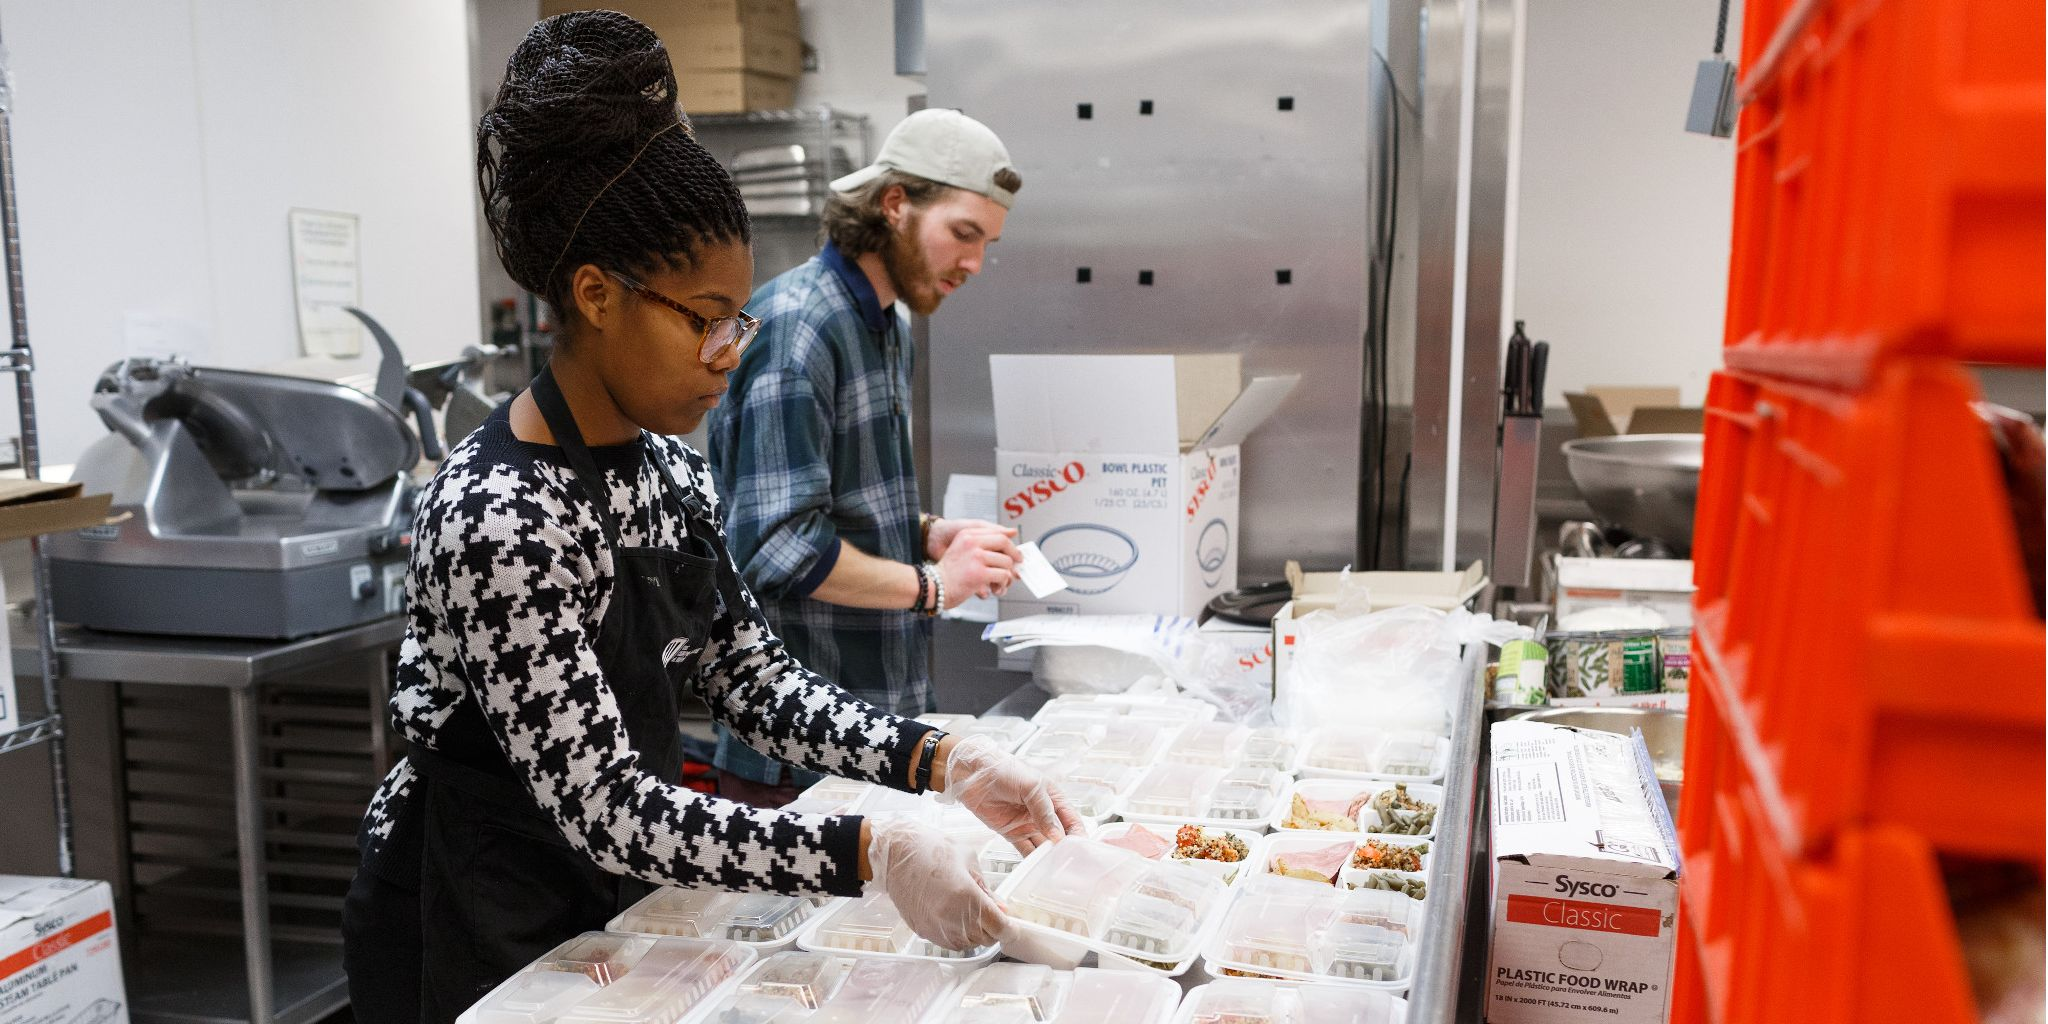 Dylan Patterson and Kaneyia Houston prepare meals for Paws' Express